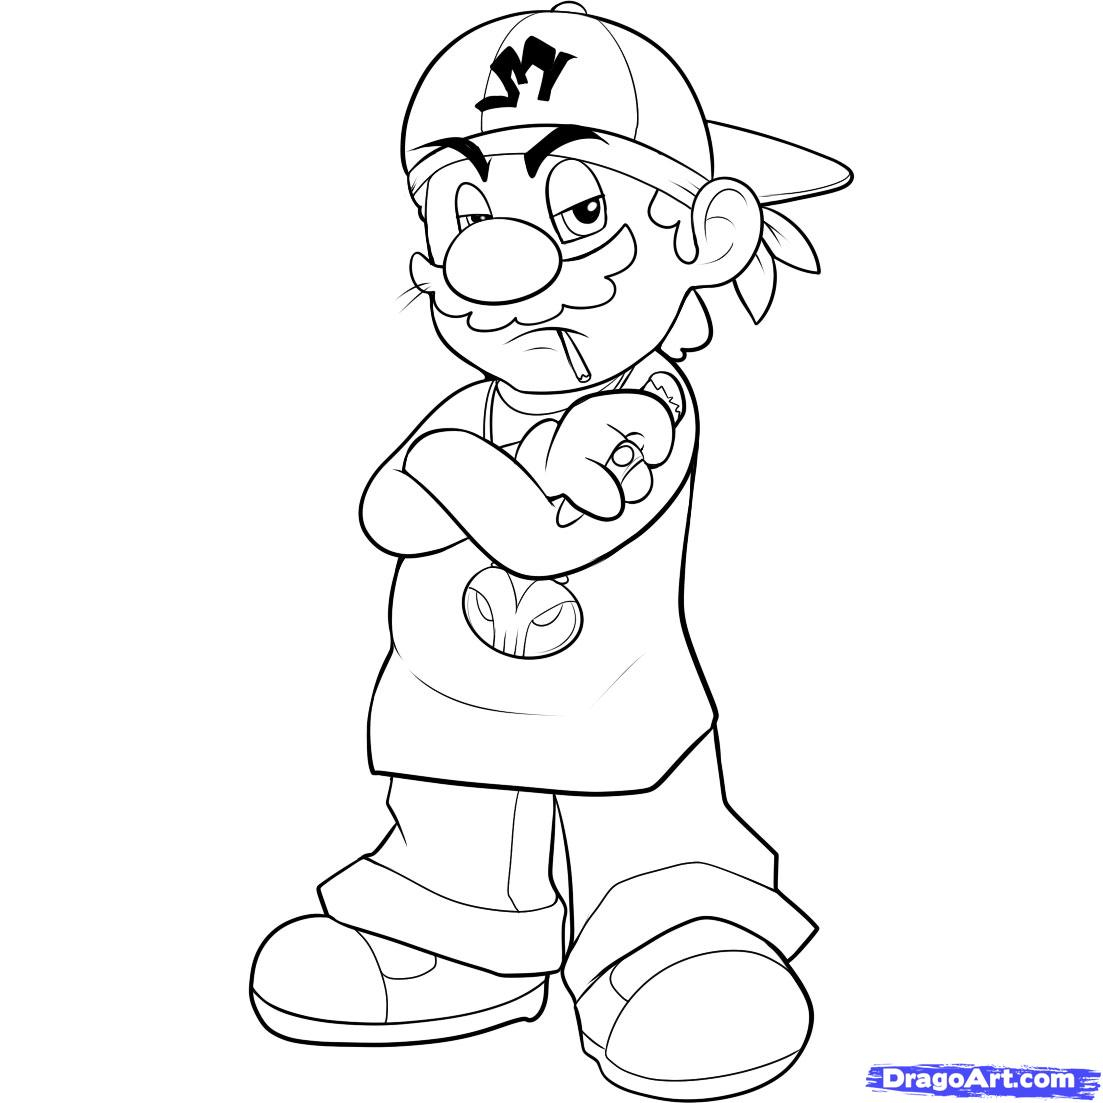 1103x1103 Draw Gangster Cartoons 7. How To Draw Gangster Mario